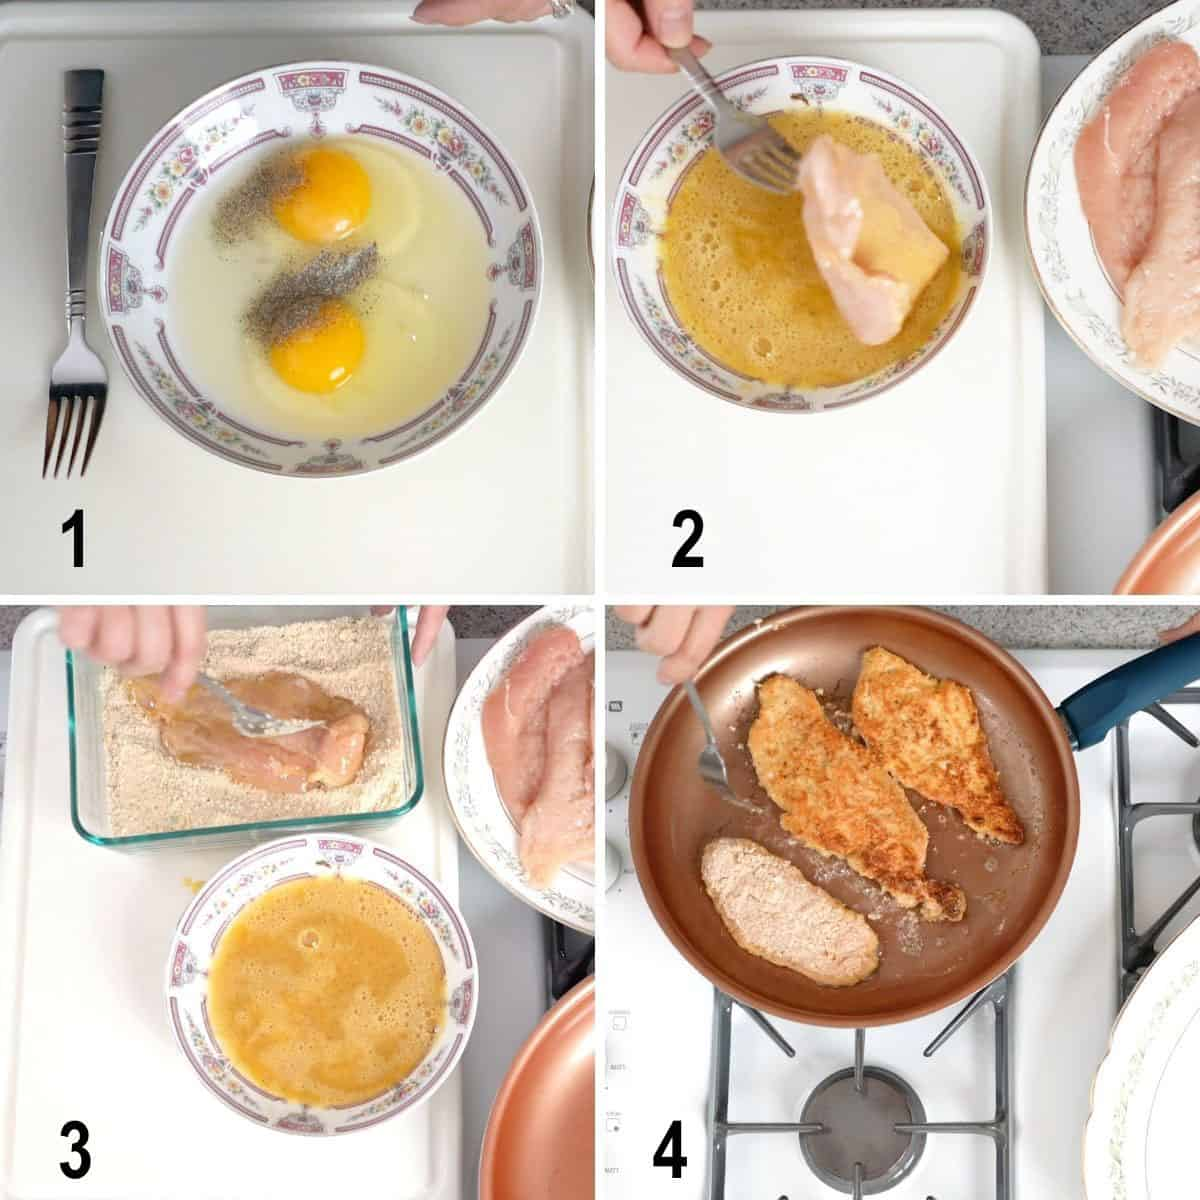 process to dip chicken in eggs, then bread crumbs, fry in pan